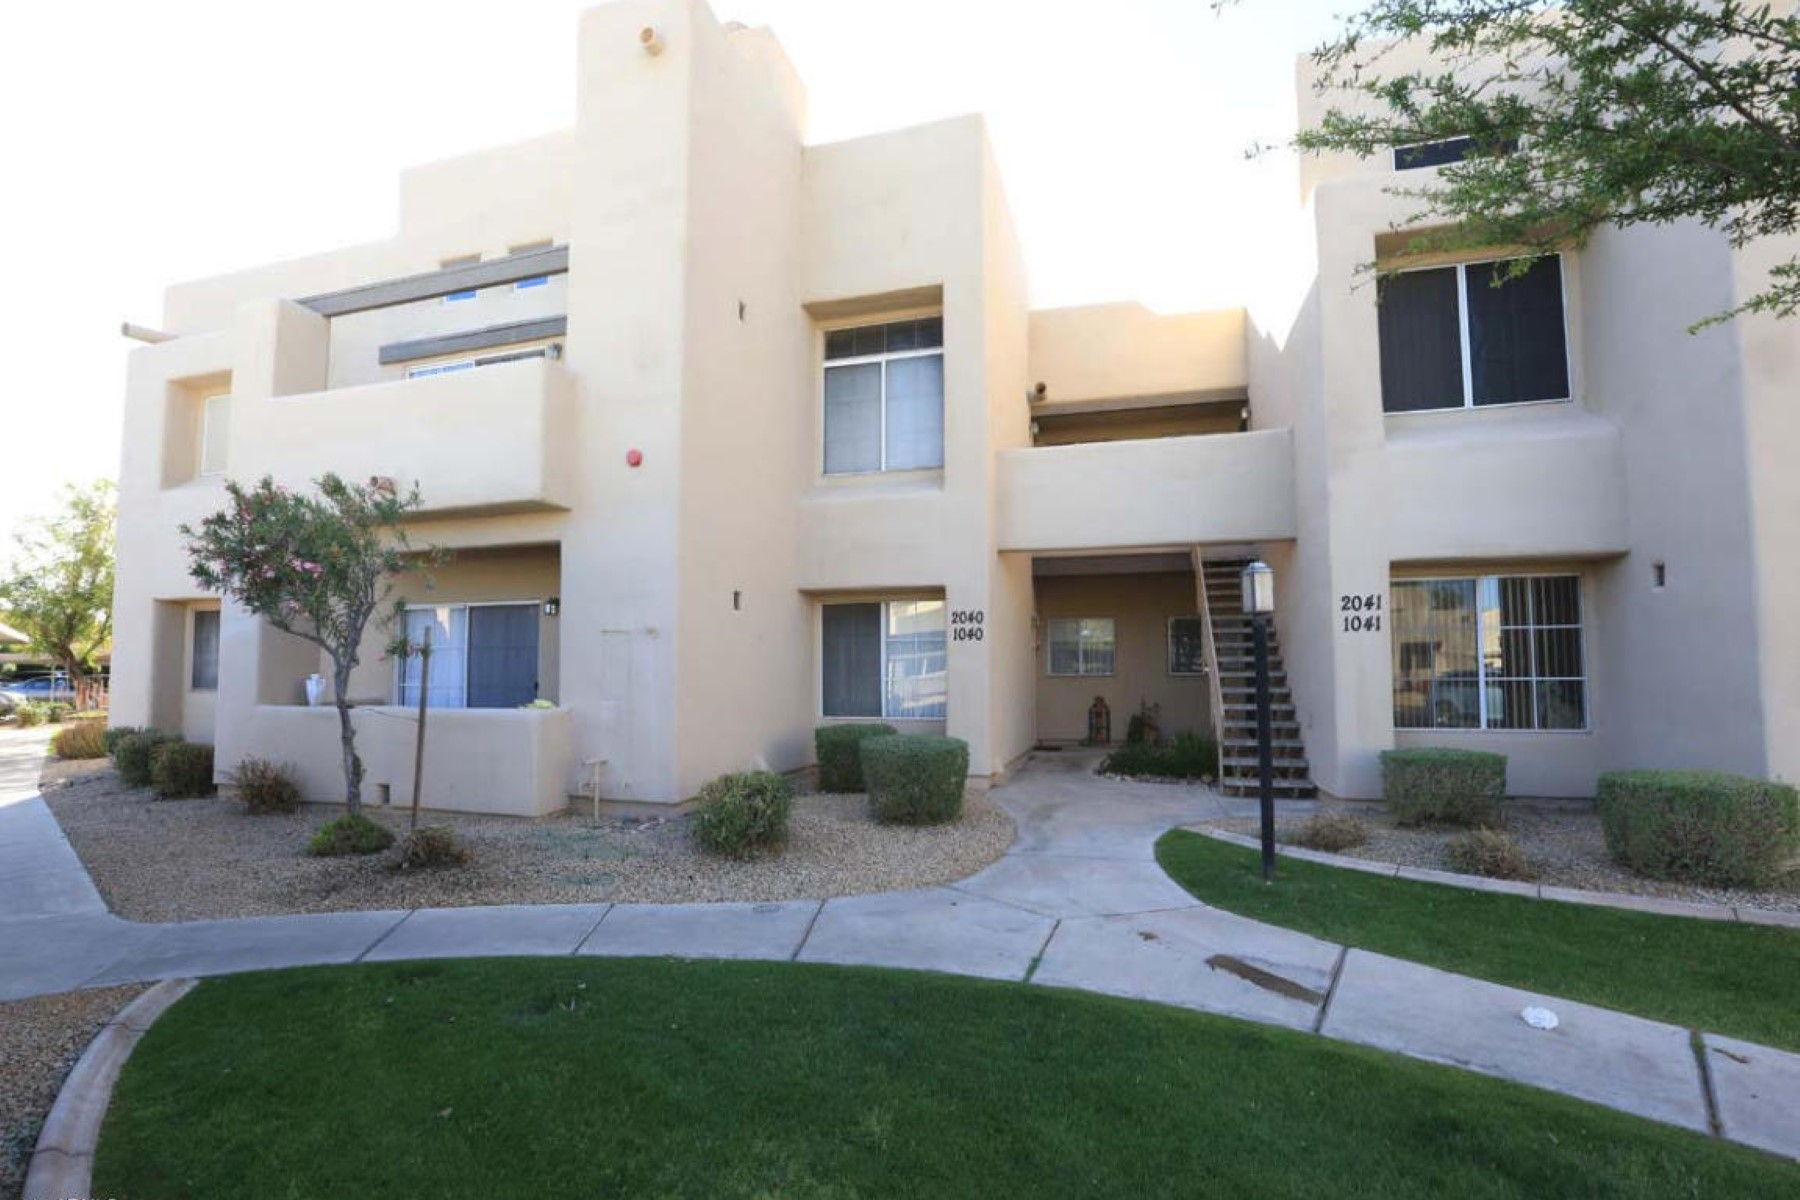 Apartment for Sale at Nice two bedroom unit with mountain views 11333 N 92nd St #2040 Scottsdale, Arizona, 85260 United States